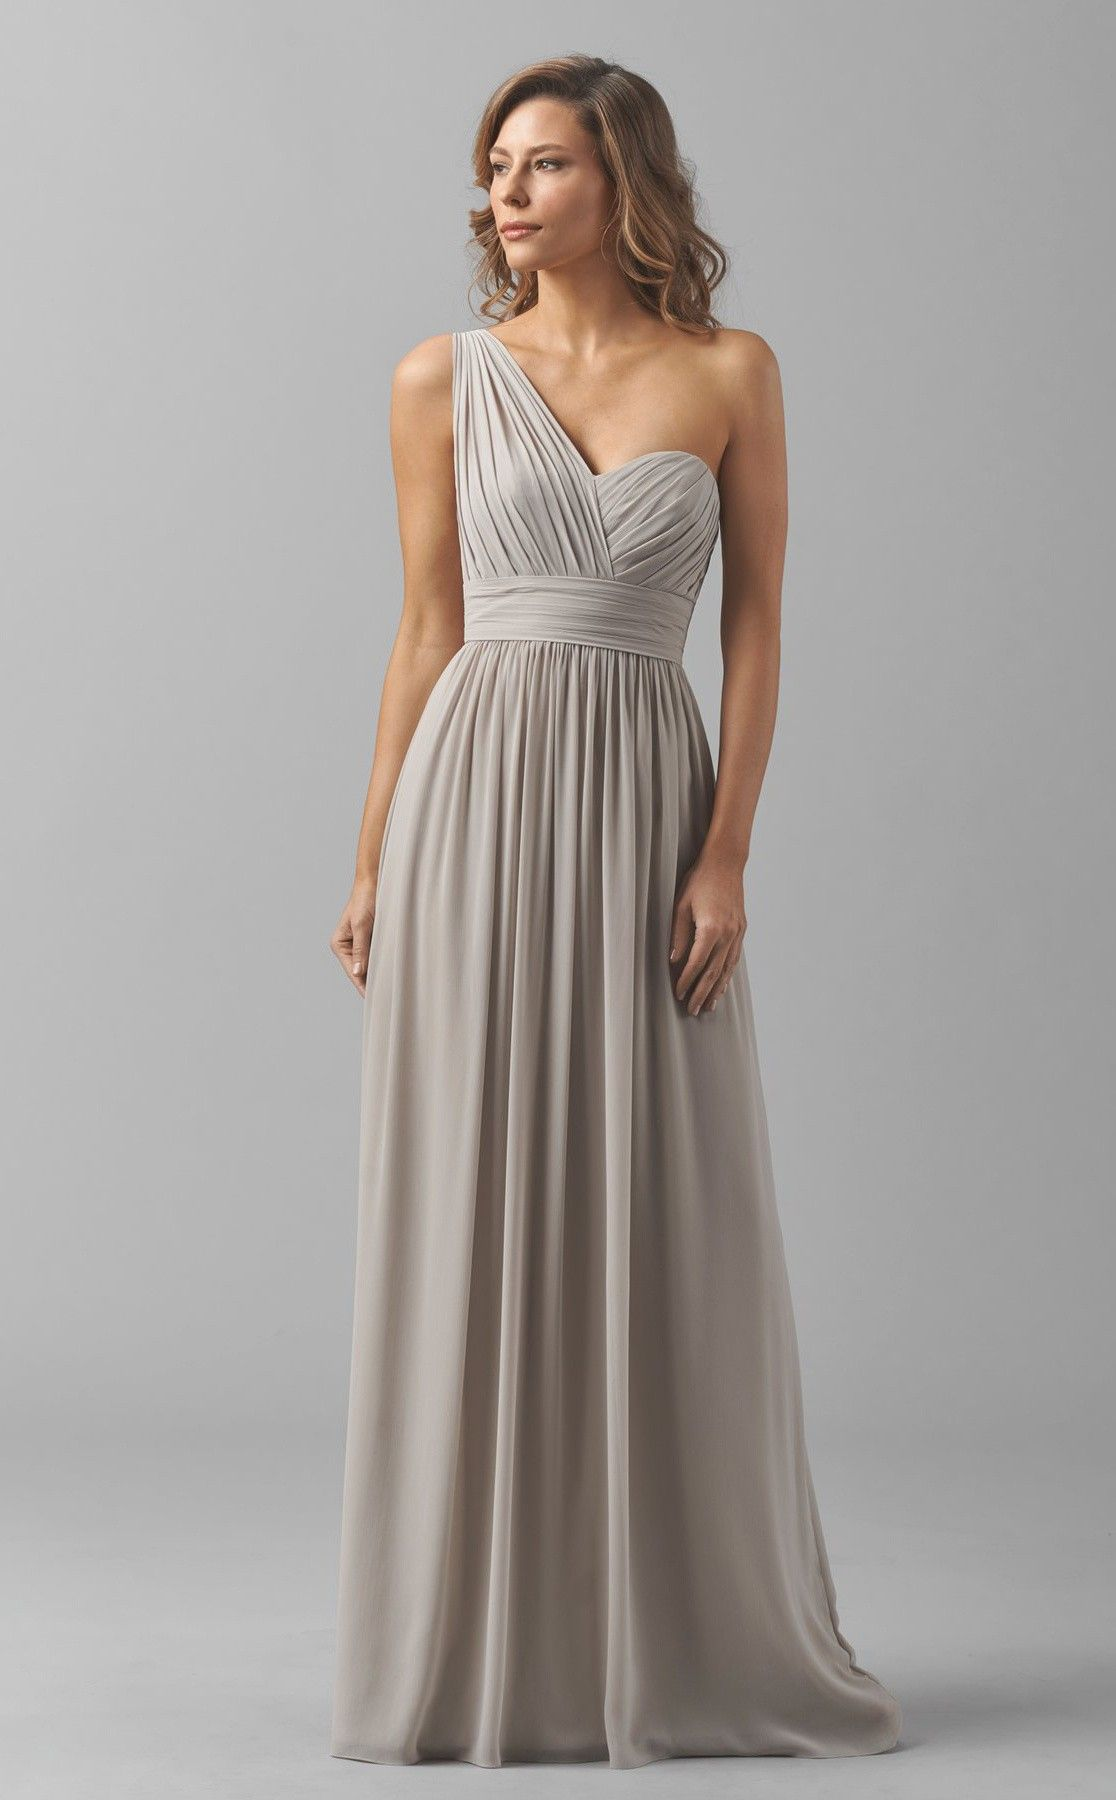 Long Chiffon Sliver Empire Waist One Shoulder Bridesmaid Dresses ... 39a0a985244b